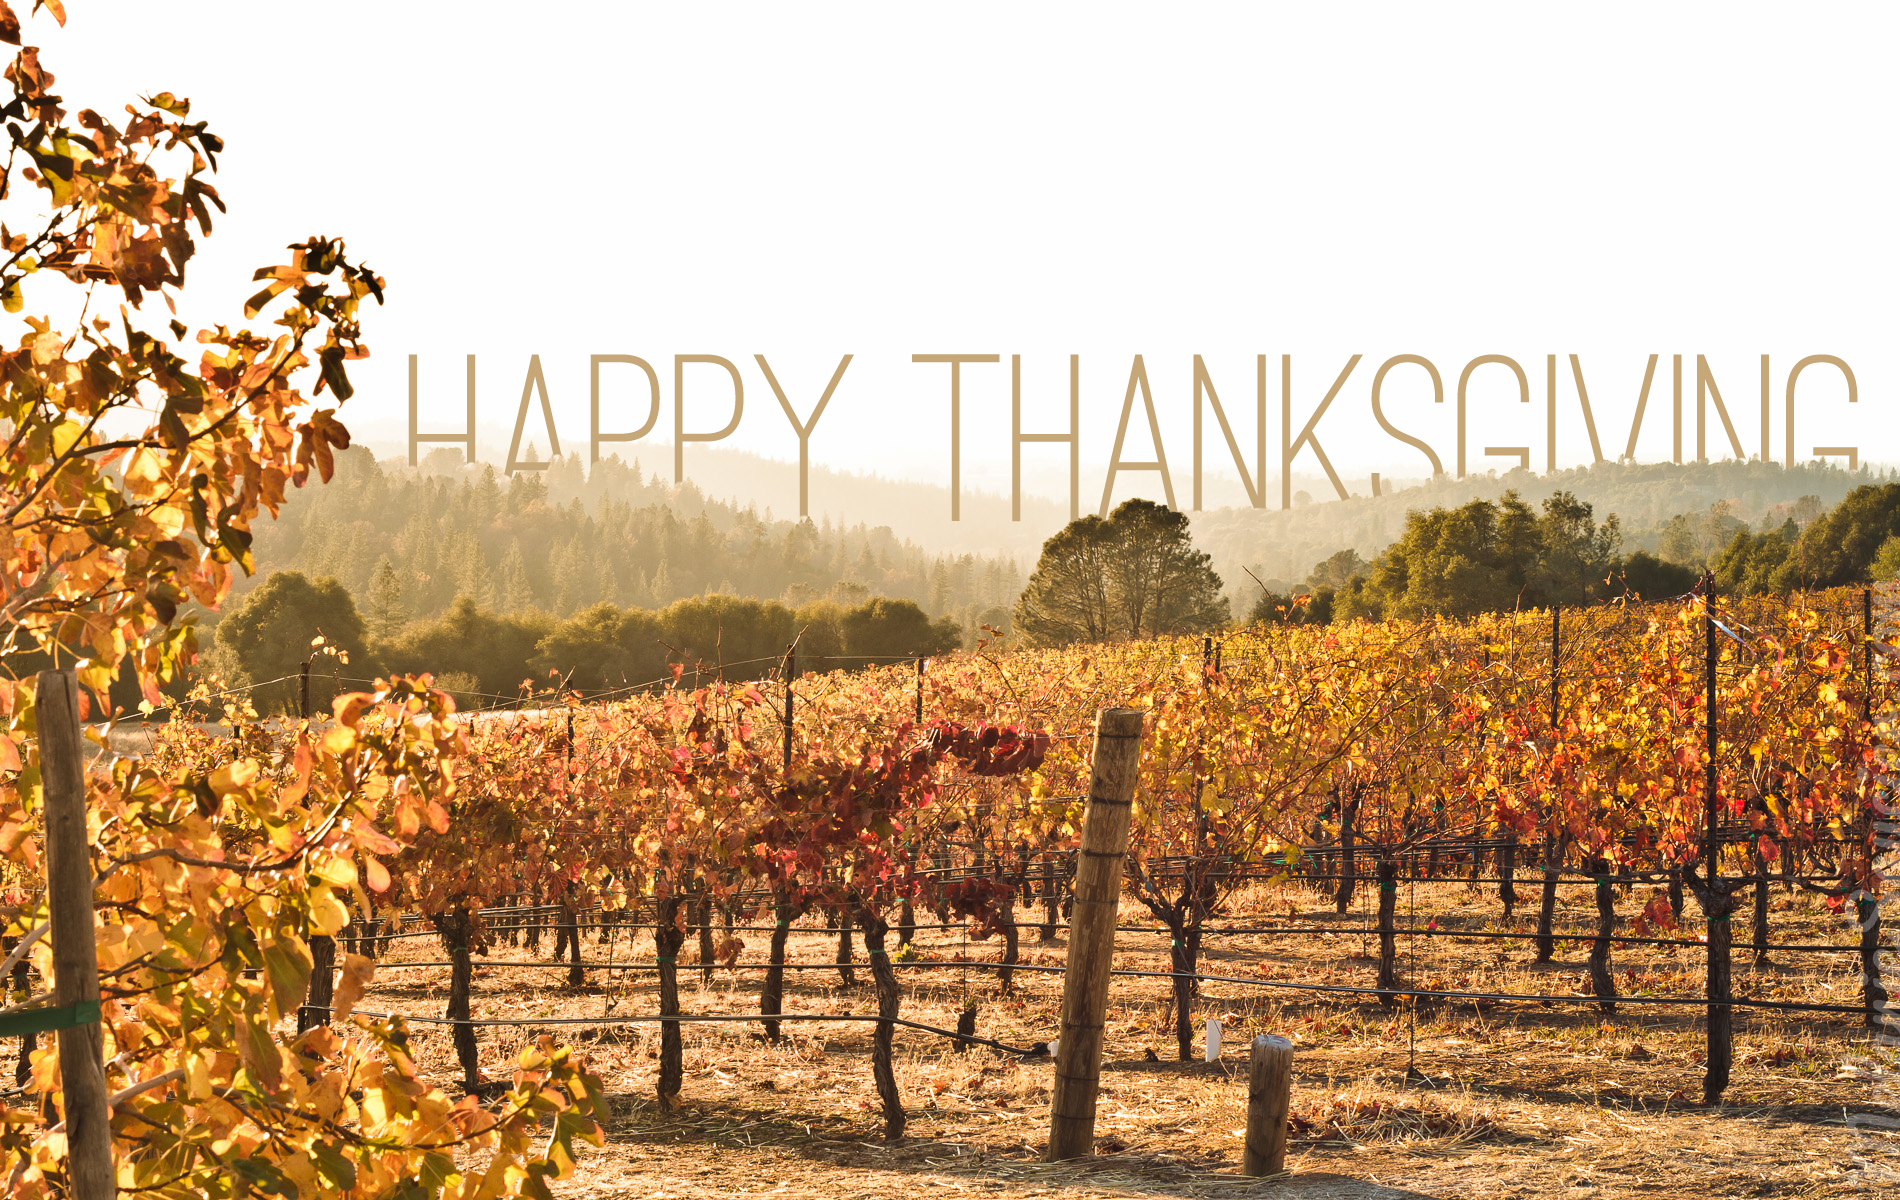 ThanksGiving_Winery_1900x1200_T